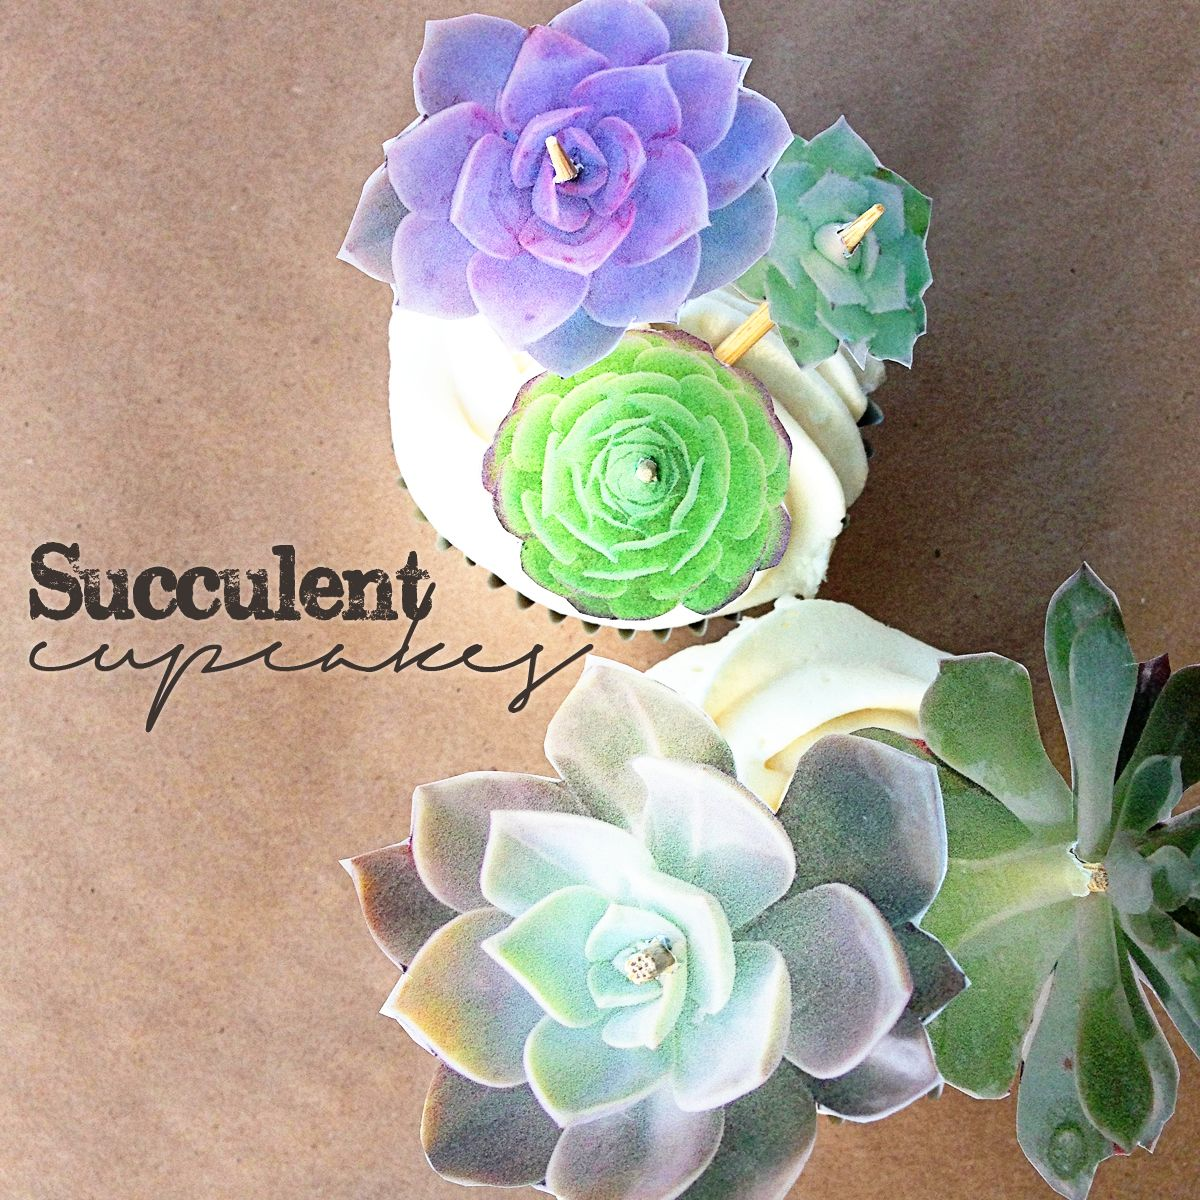 Succulent Cupcakes Know How She Does It